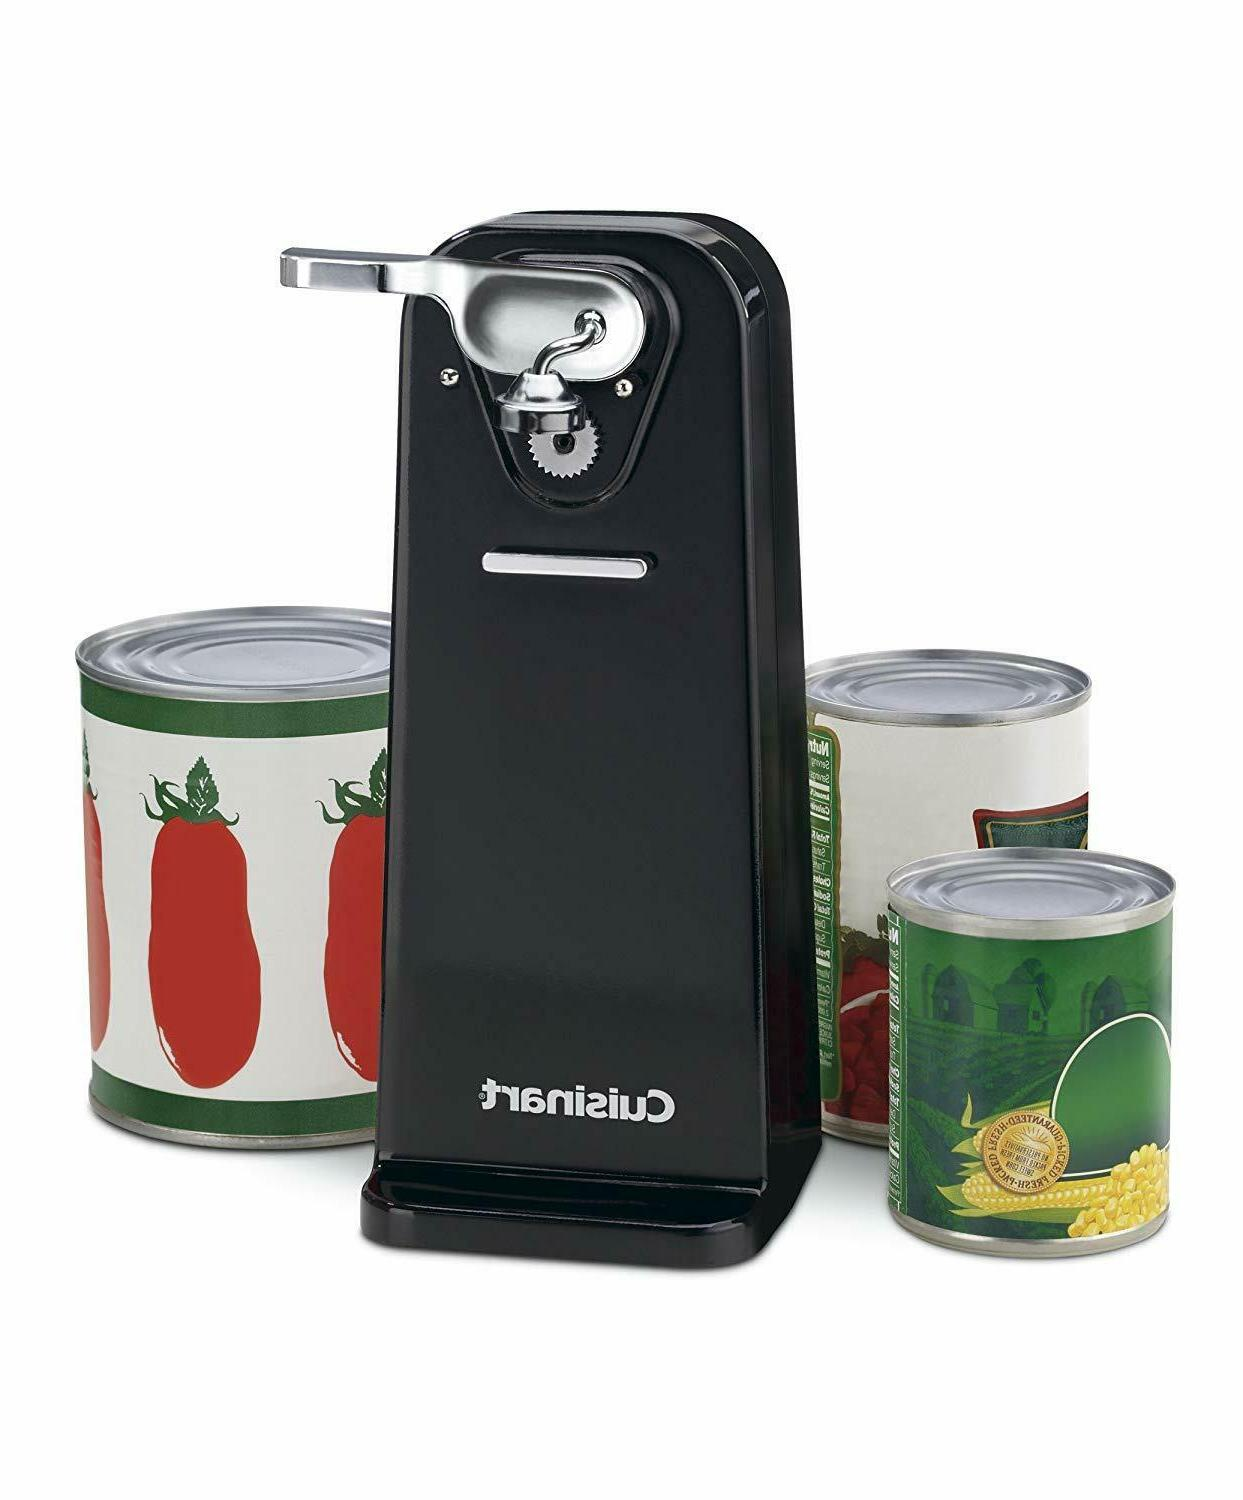 Cuisinart CCO-50BKN Deluxe Electric Can Opener, Black - NEW